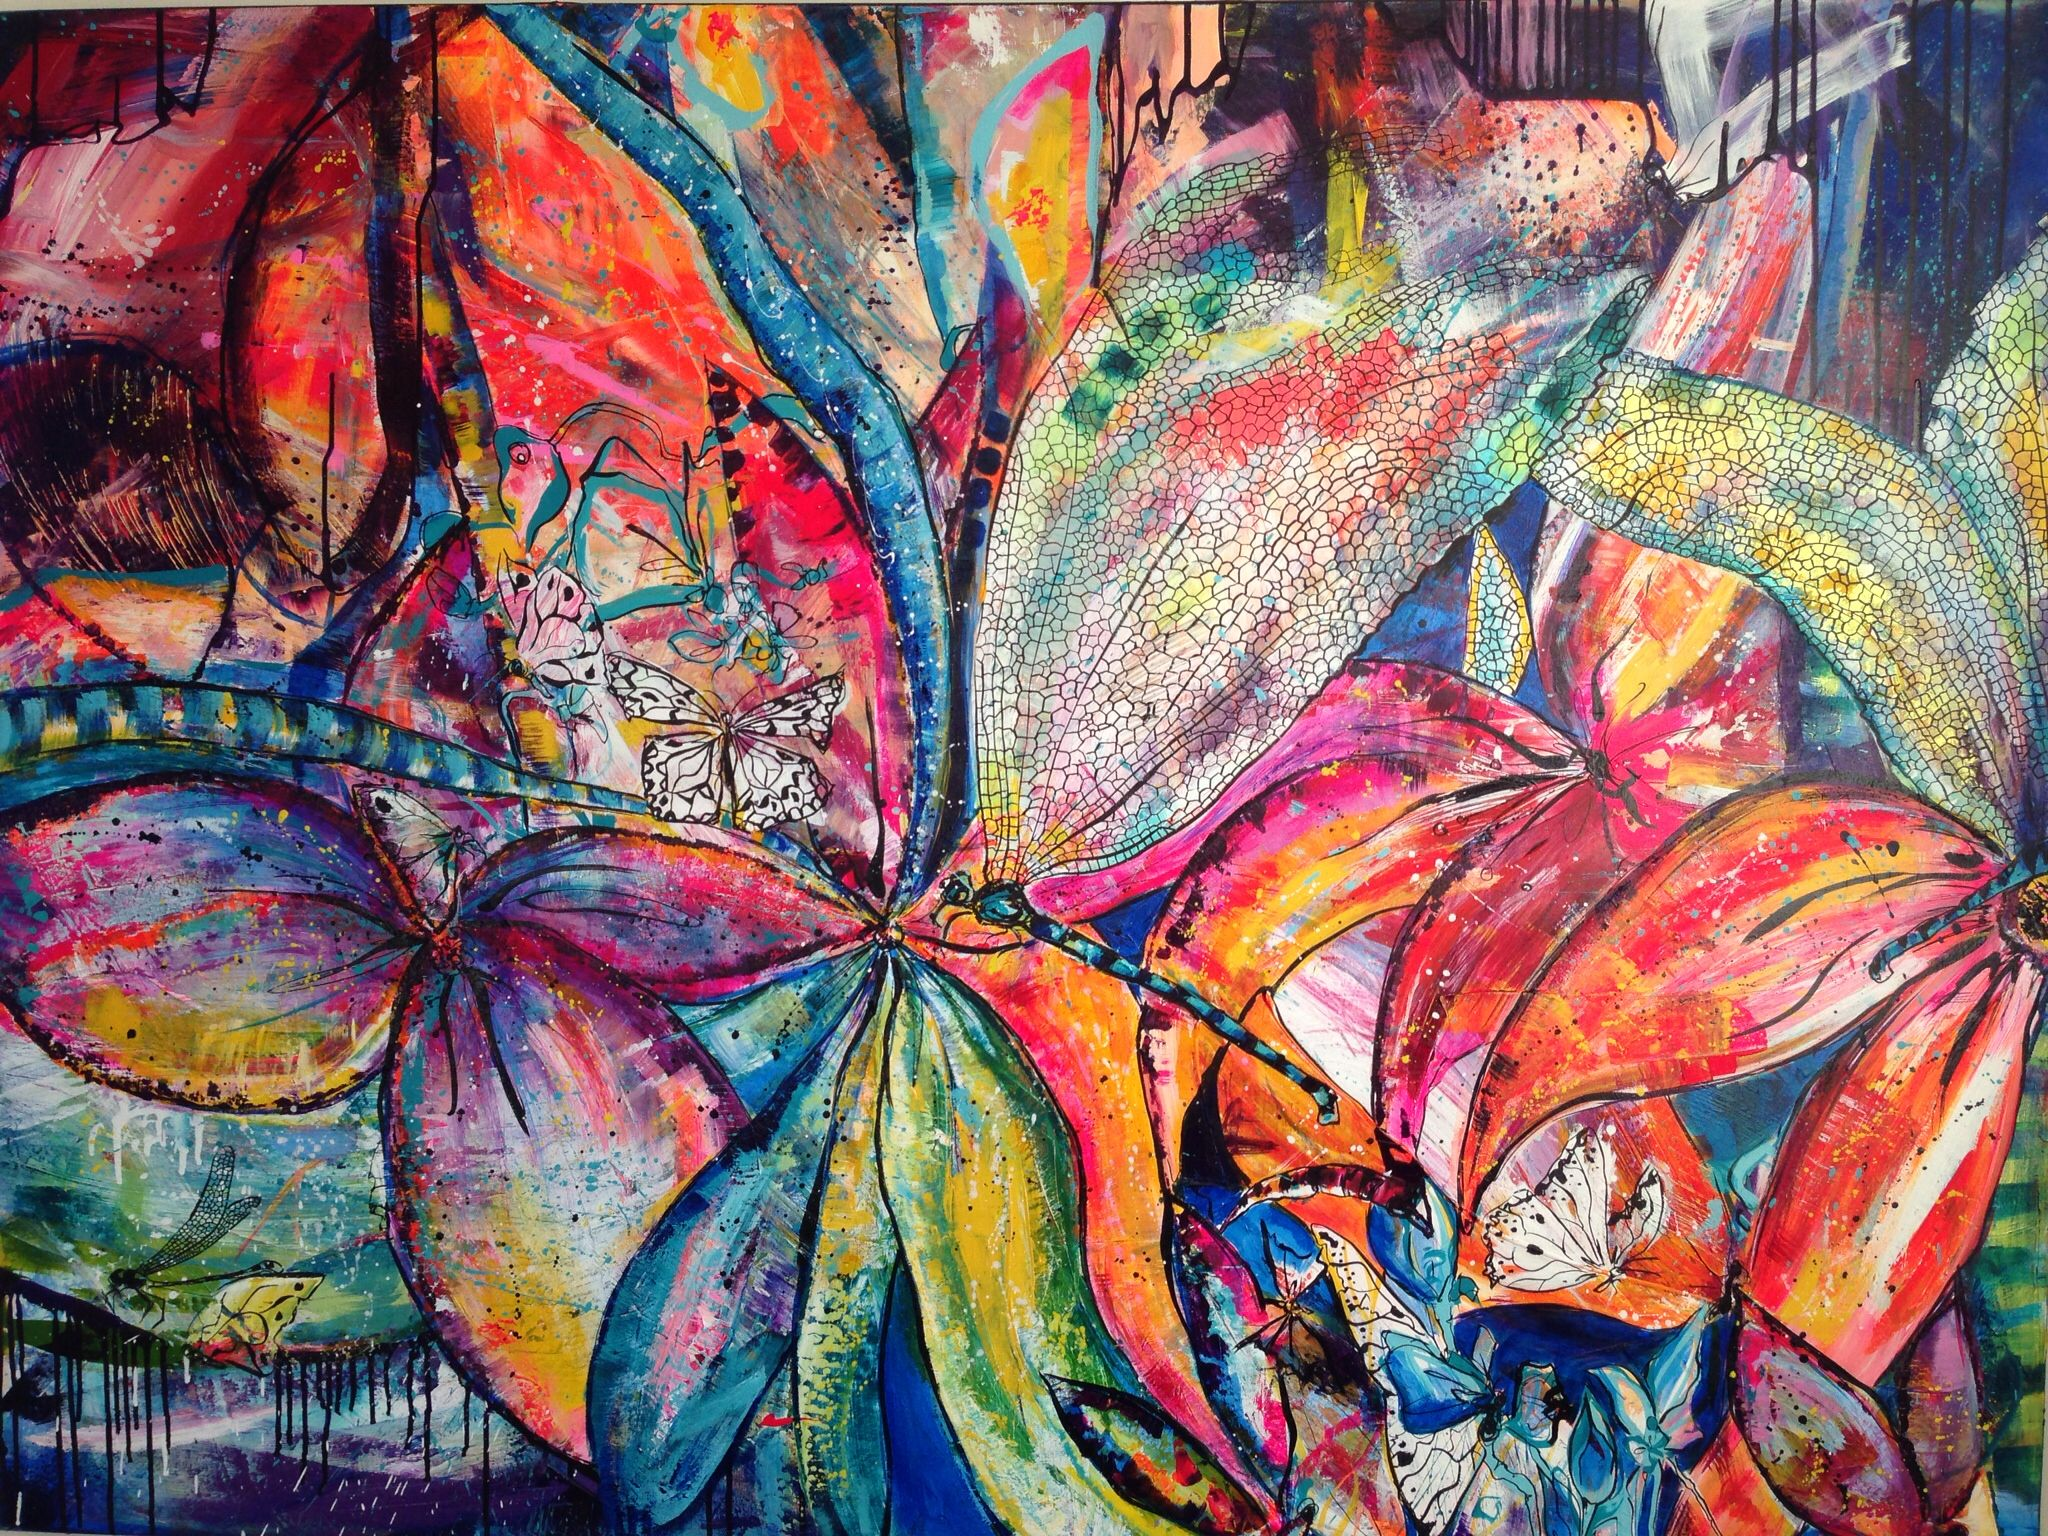 Acrylic on Canvas - 120 x 160 cm - PulkkinenArt.